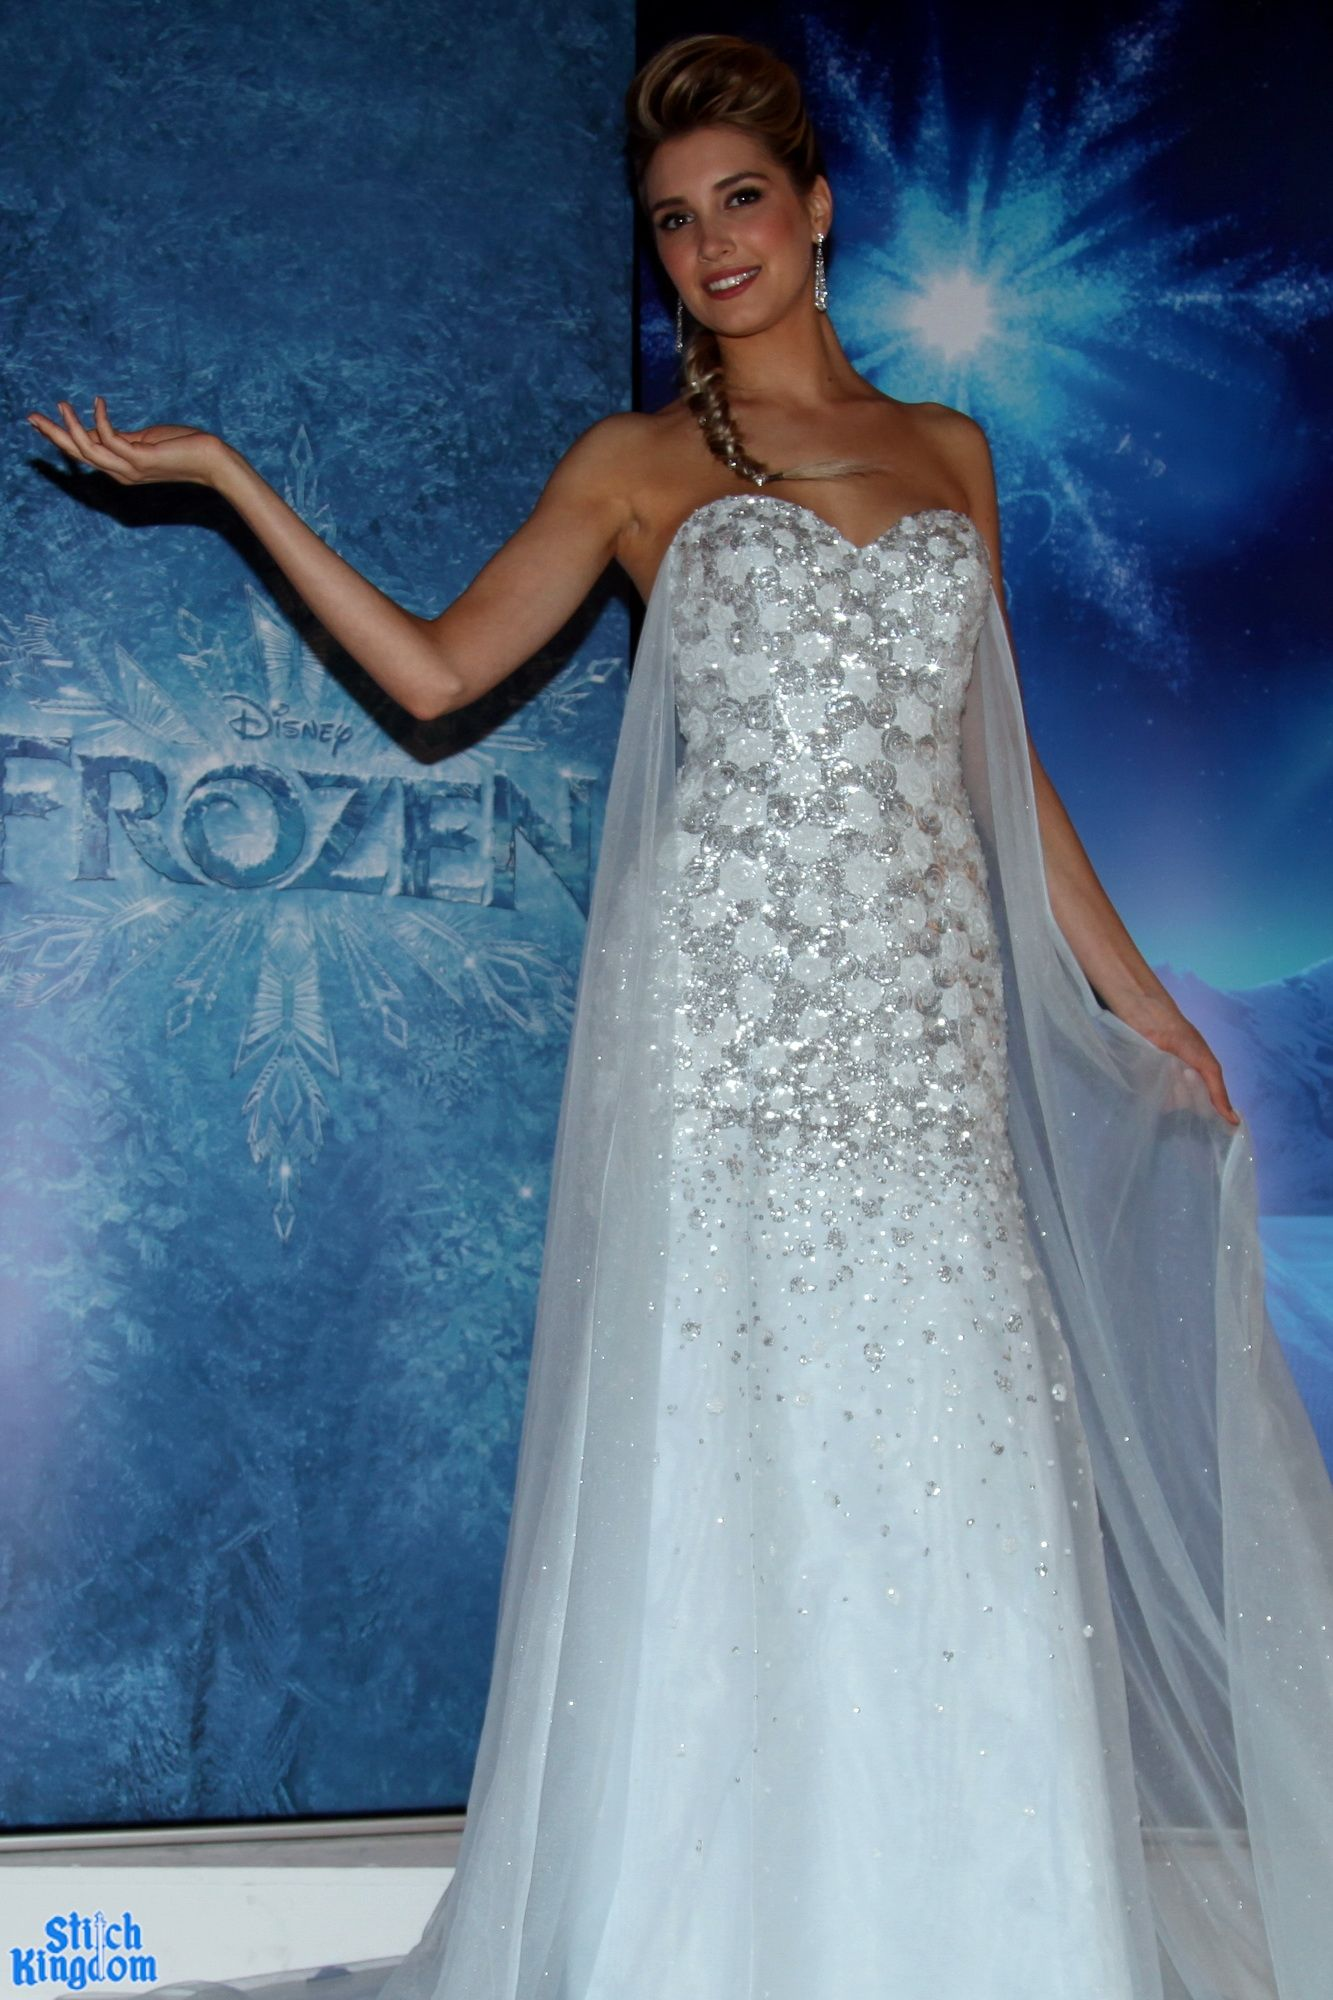 cinderella inspired wedding dress PHOTOS VIDEO Elsa Wedding Dress by Alfred Angelo Debuts at